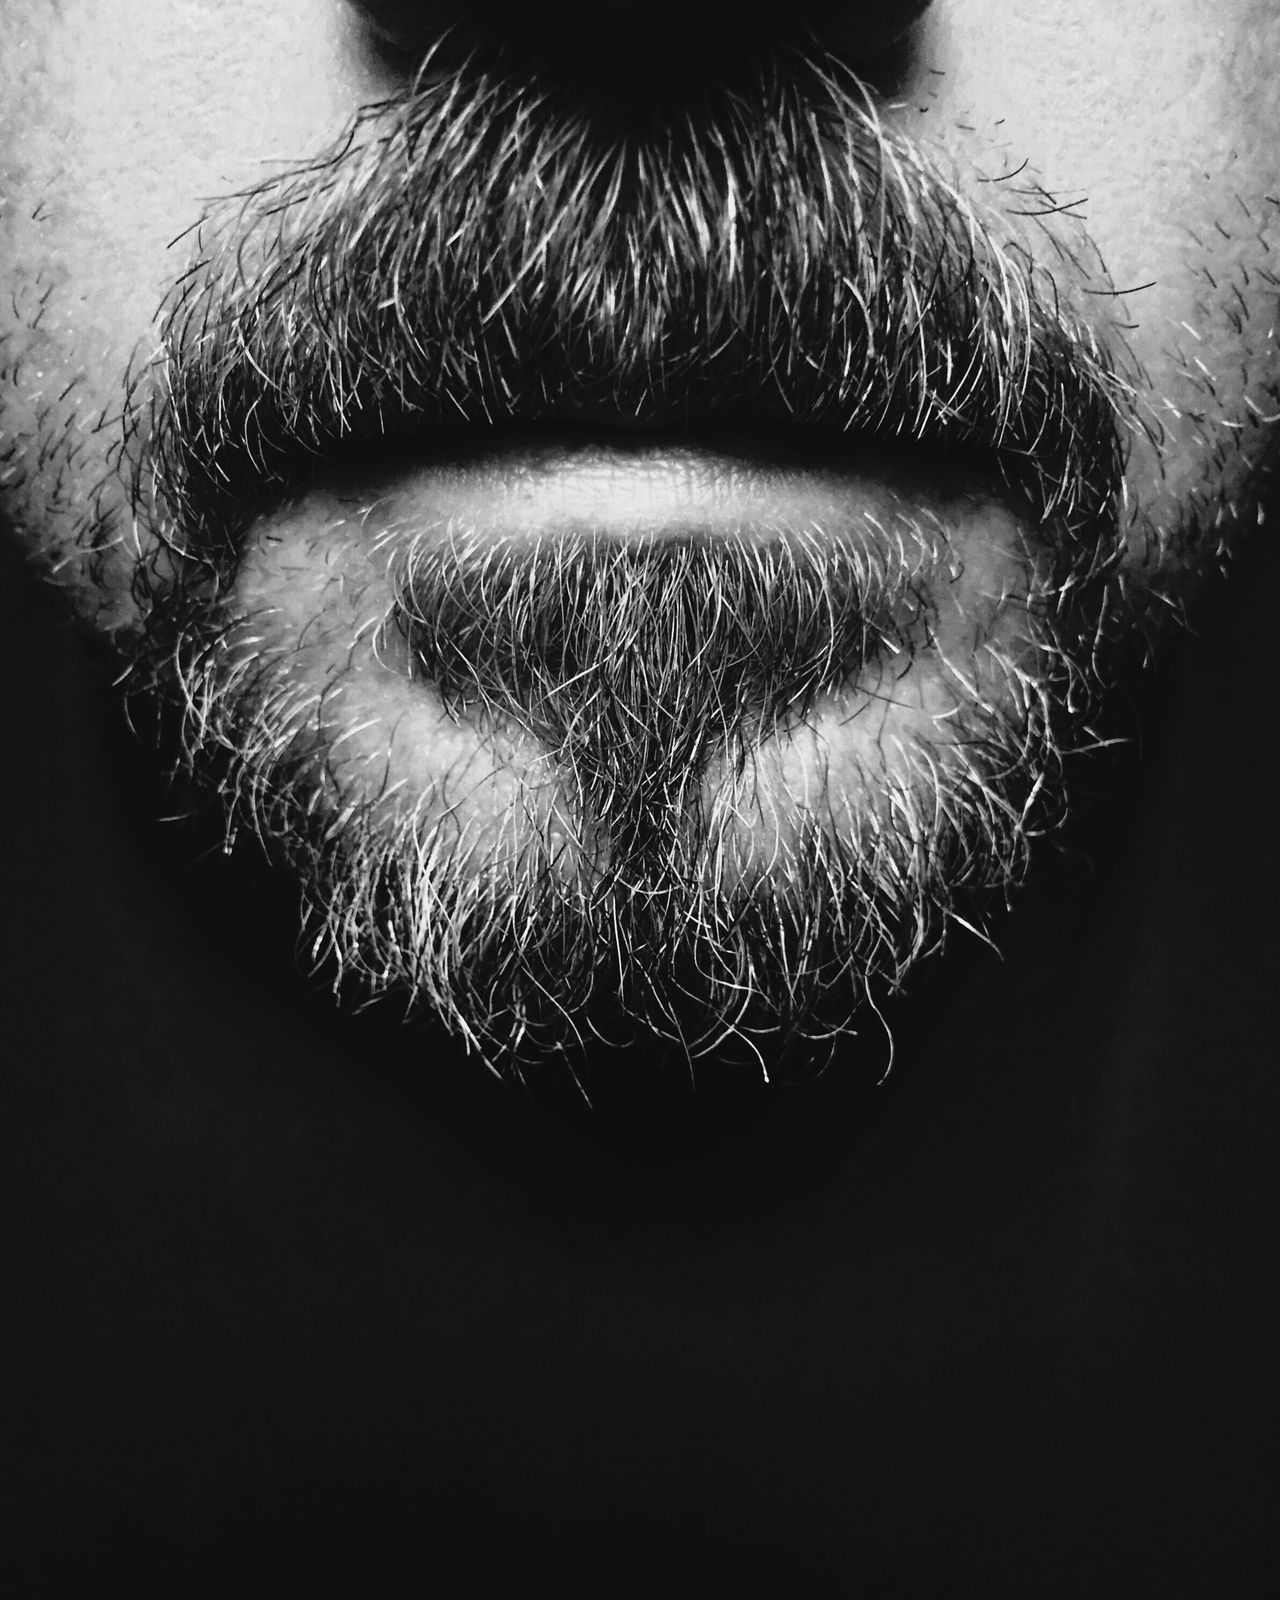 Thought I'd get the ball rolling with a Self Portrait edited using Black App Black & White Black And White Iphone 6 IPhoneography First Eyeem Photo Mouth Beard Portrait